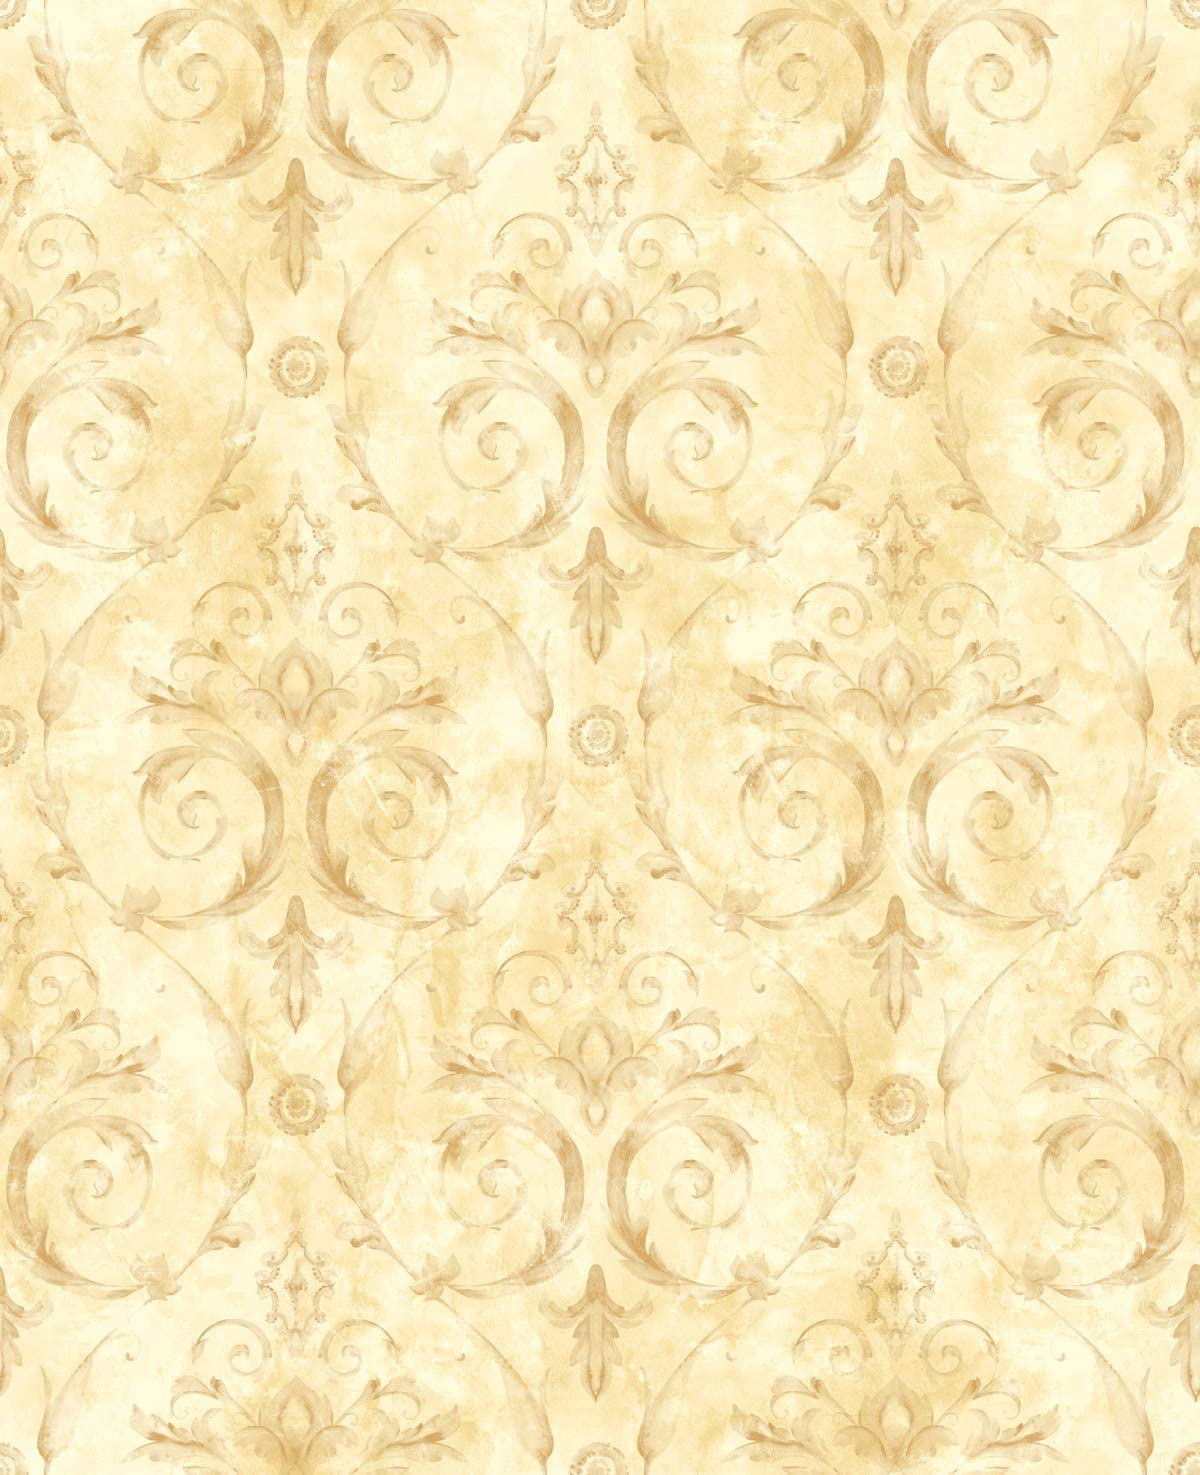 Gold Wallpaper Damask Floral Wallpaper Victorian Wallpaper Vintage